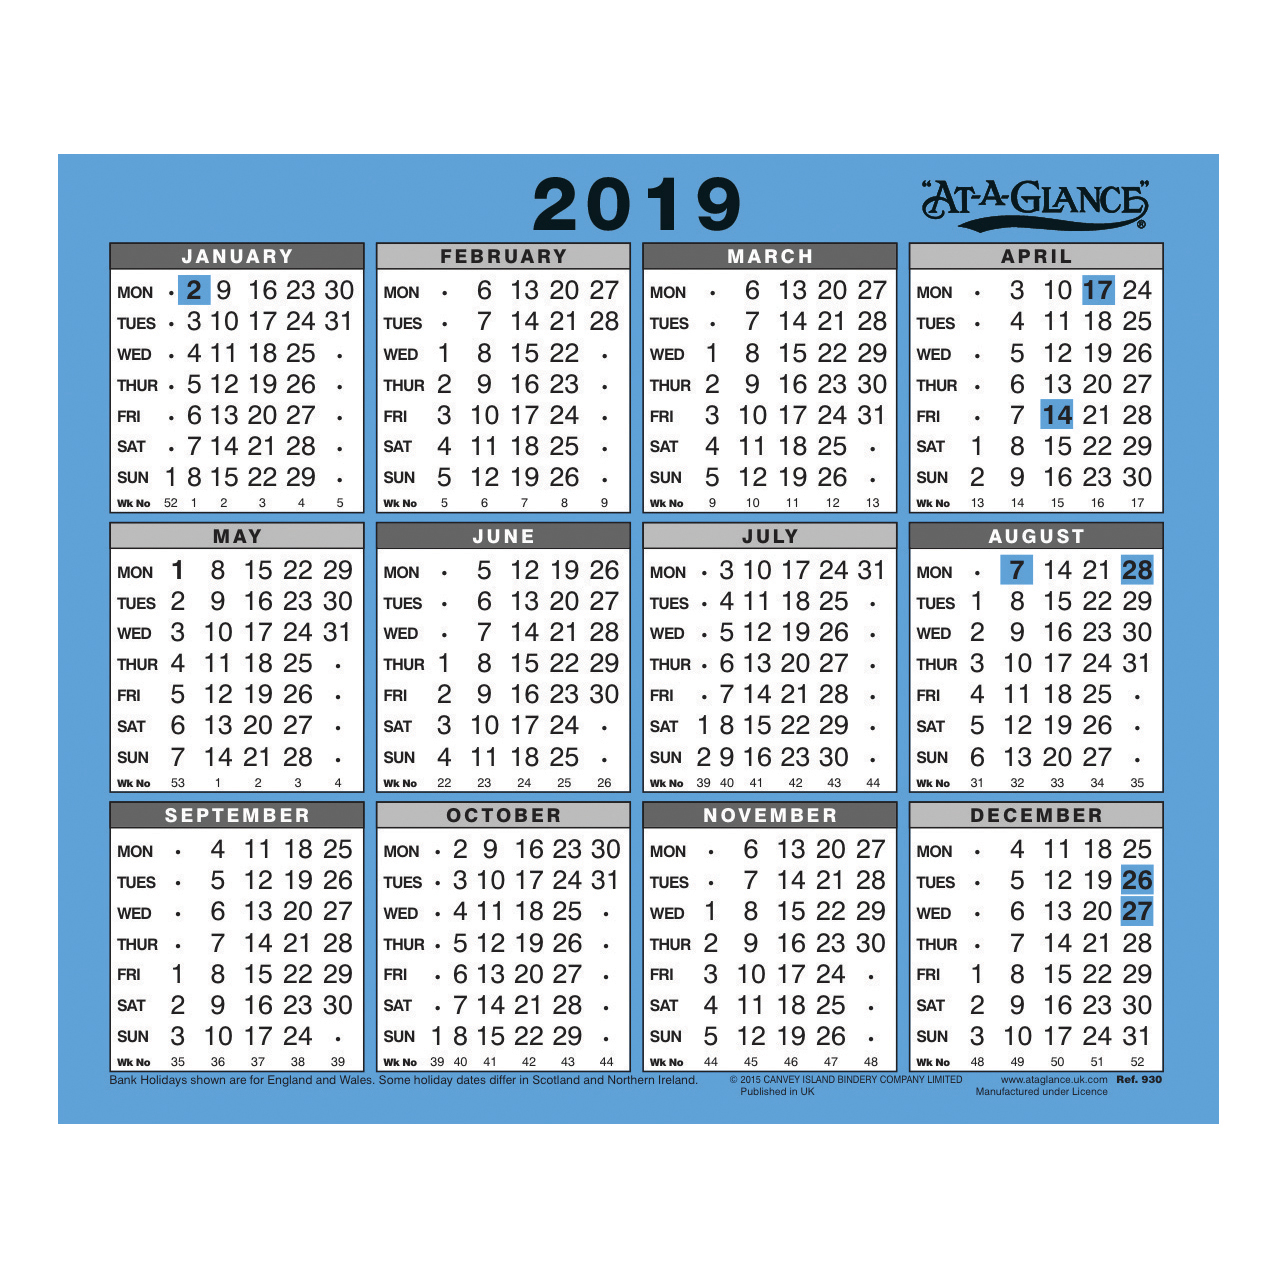 At-A-Glance 2019 Wall/Desk Calendar Year to View Gloss Board Binding 254x210mm White/Blue Ref 930 2019